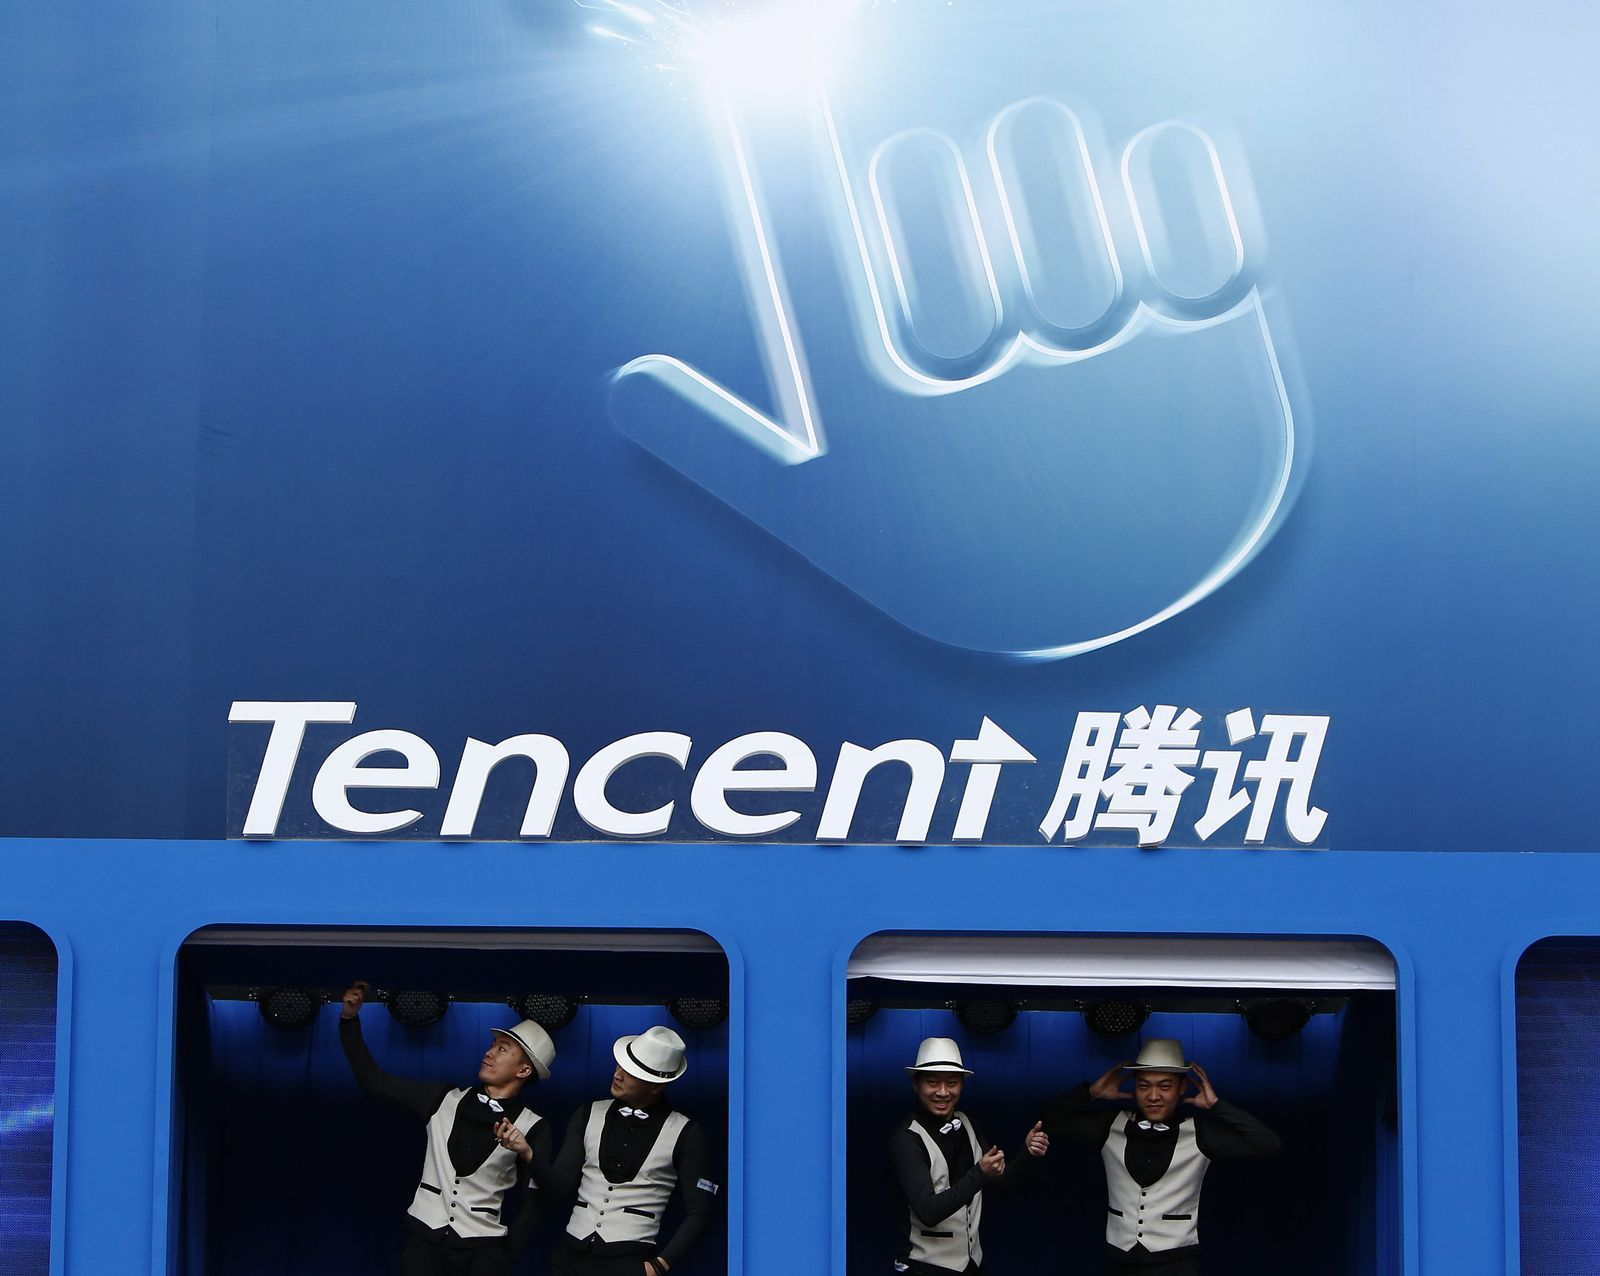 Tencent / Mobile Internet Conference